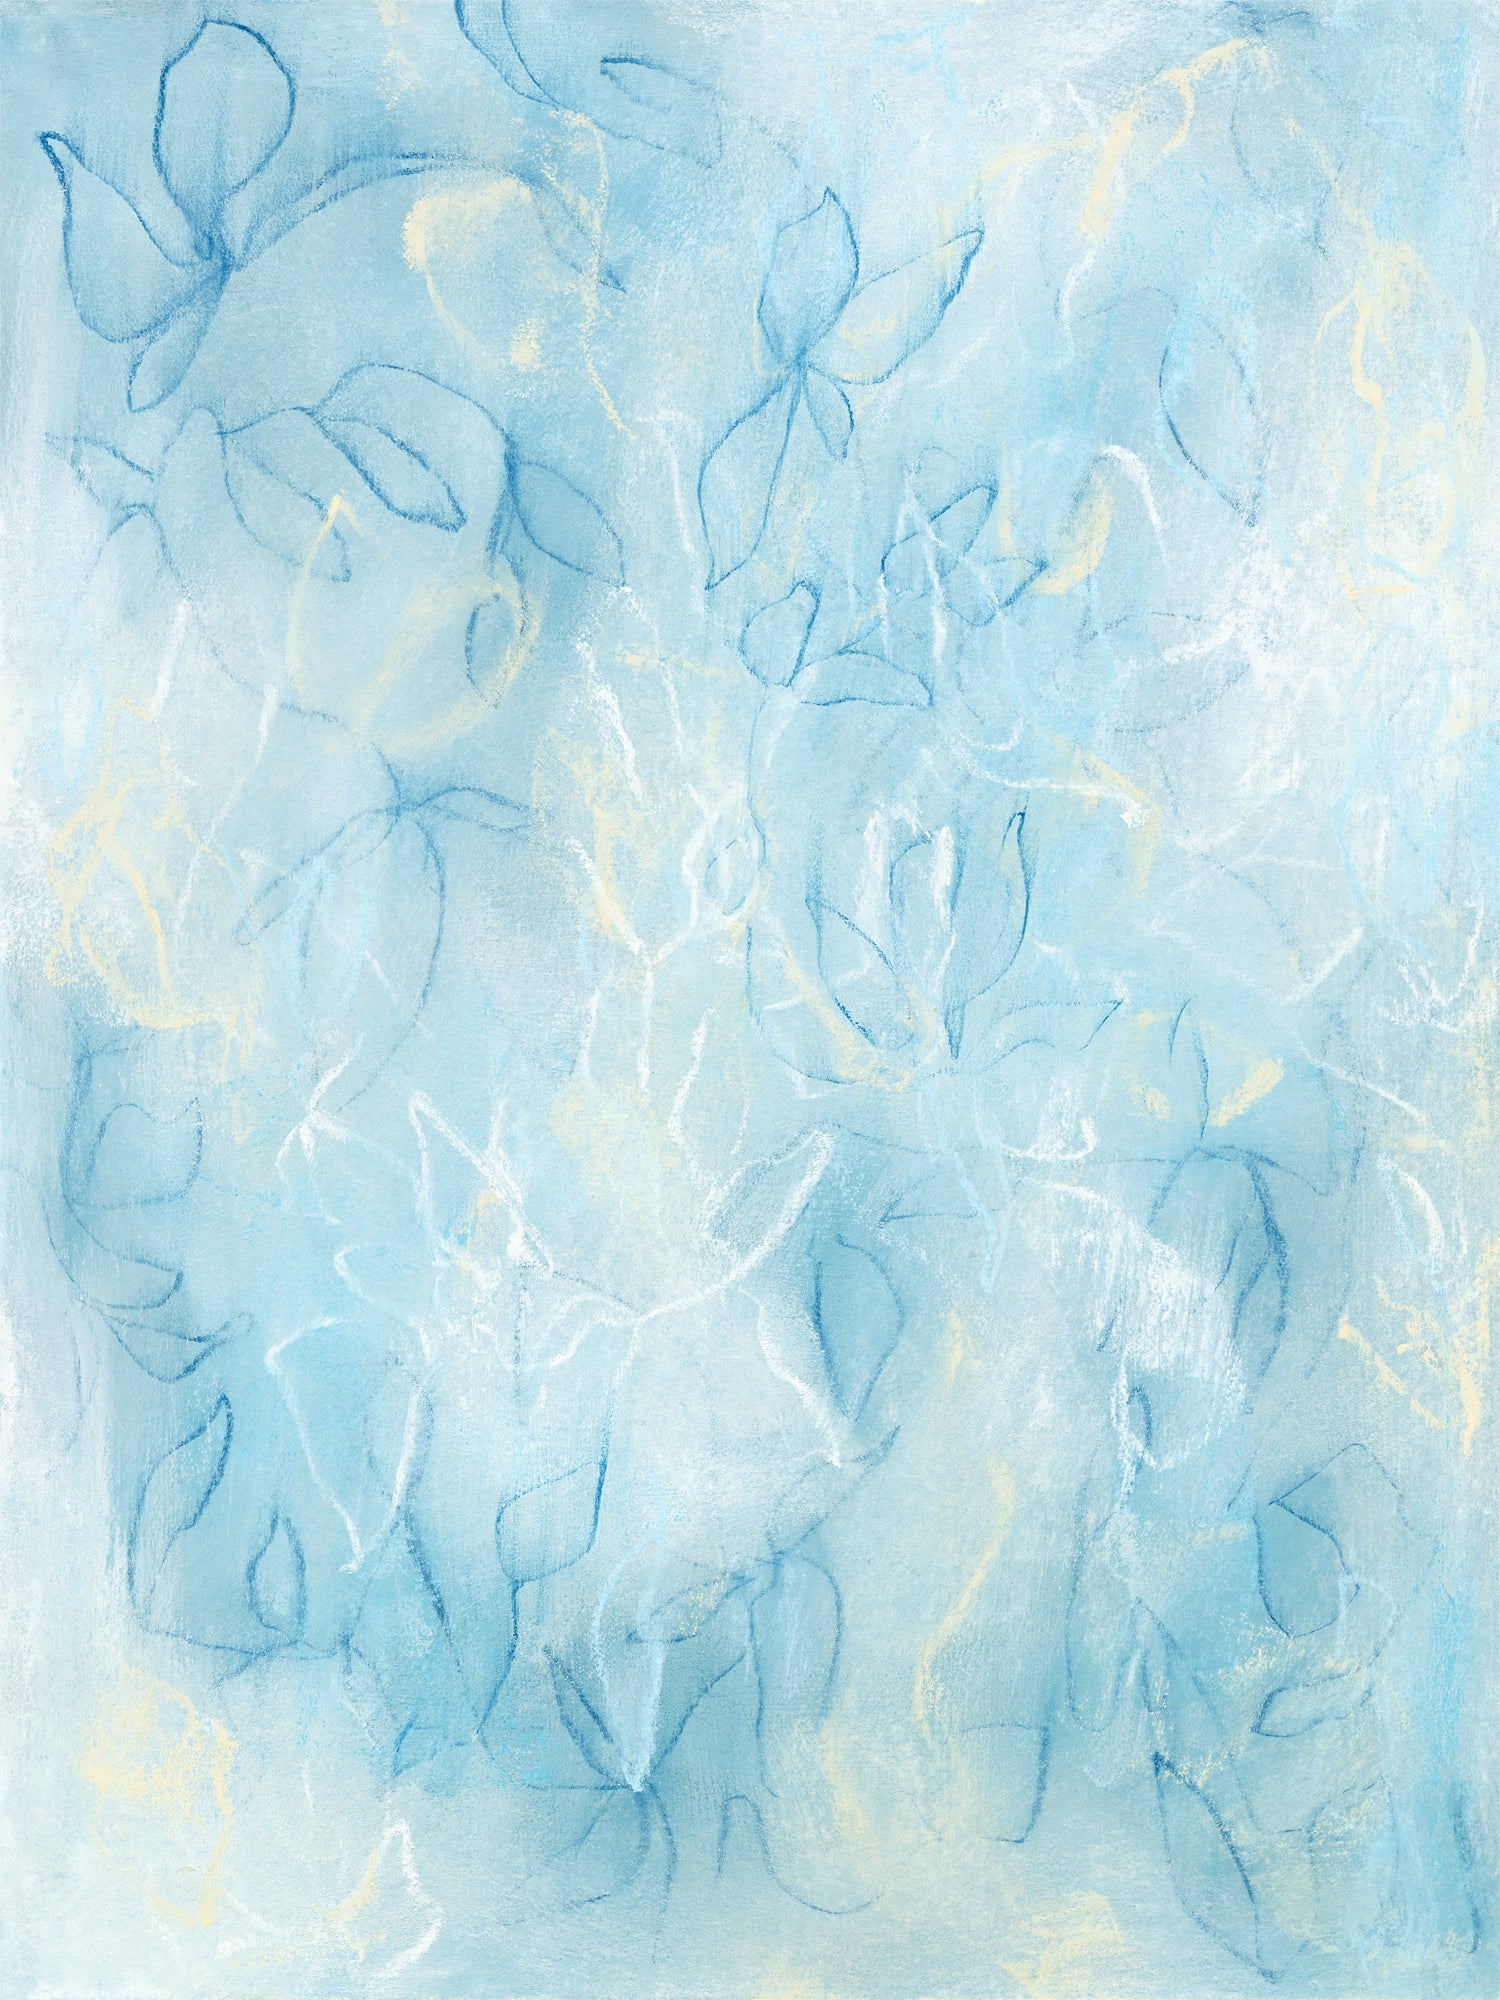 Blue abstract flora and fauna drawing by artist Sara Richardson